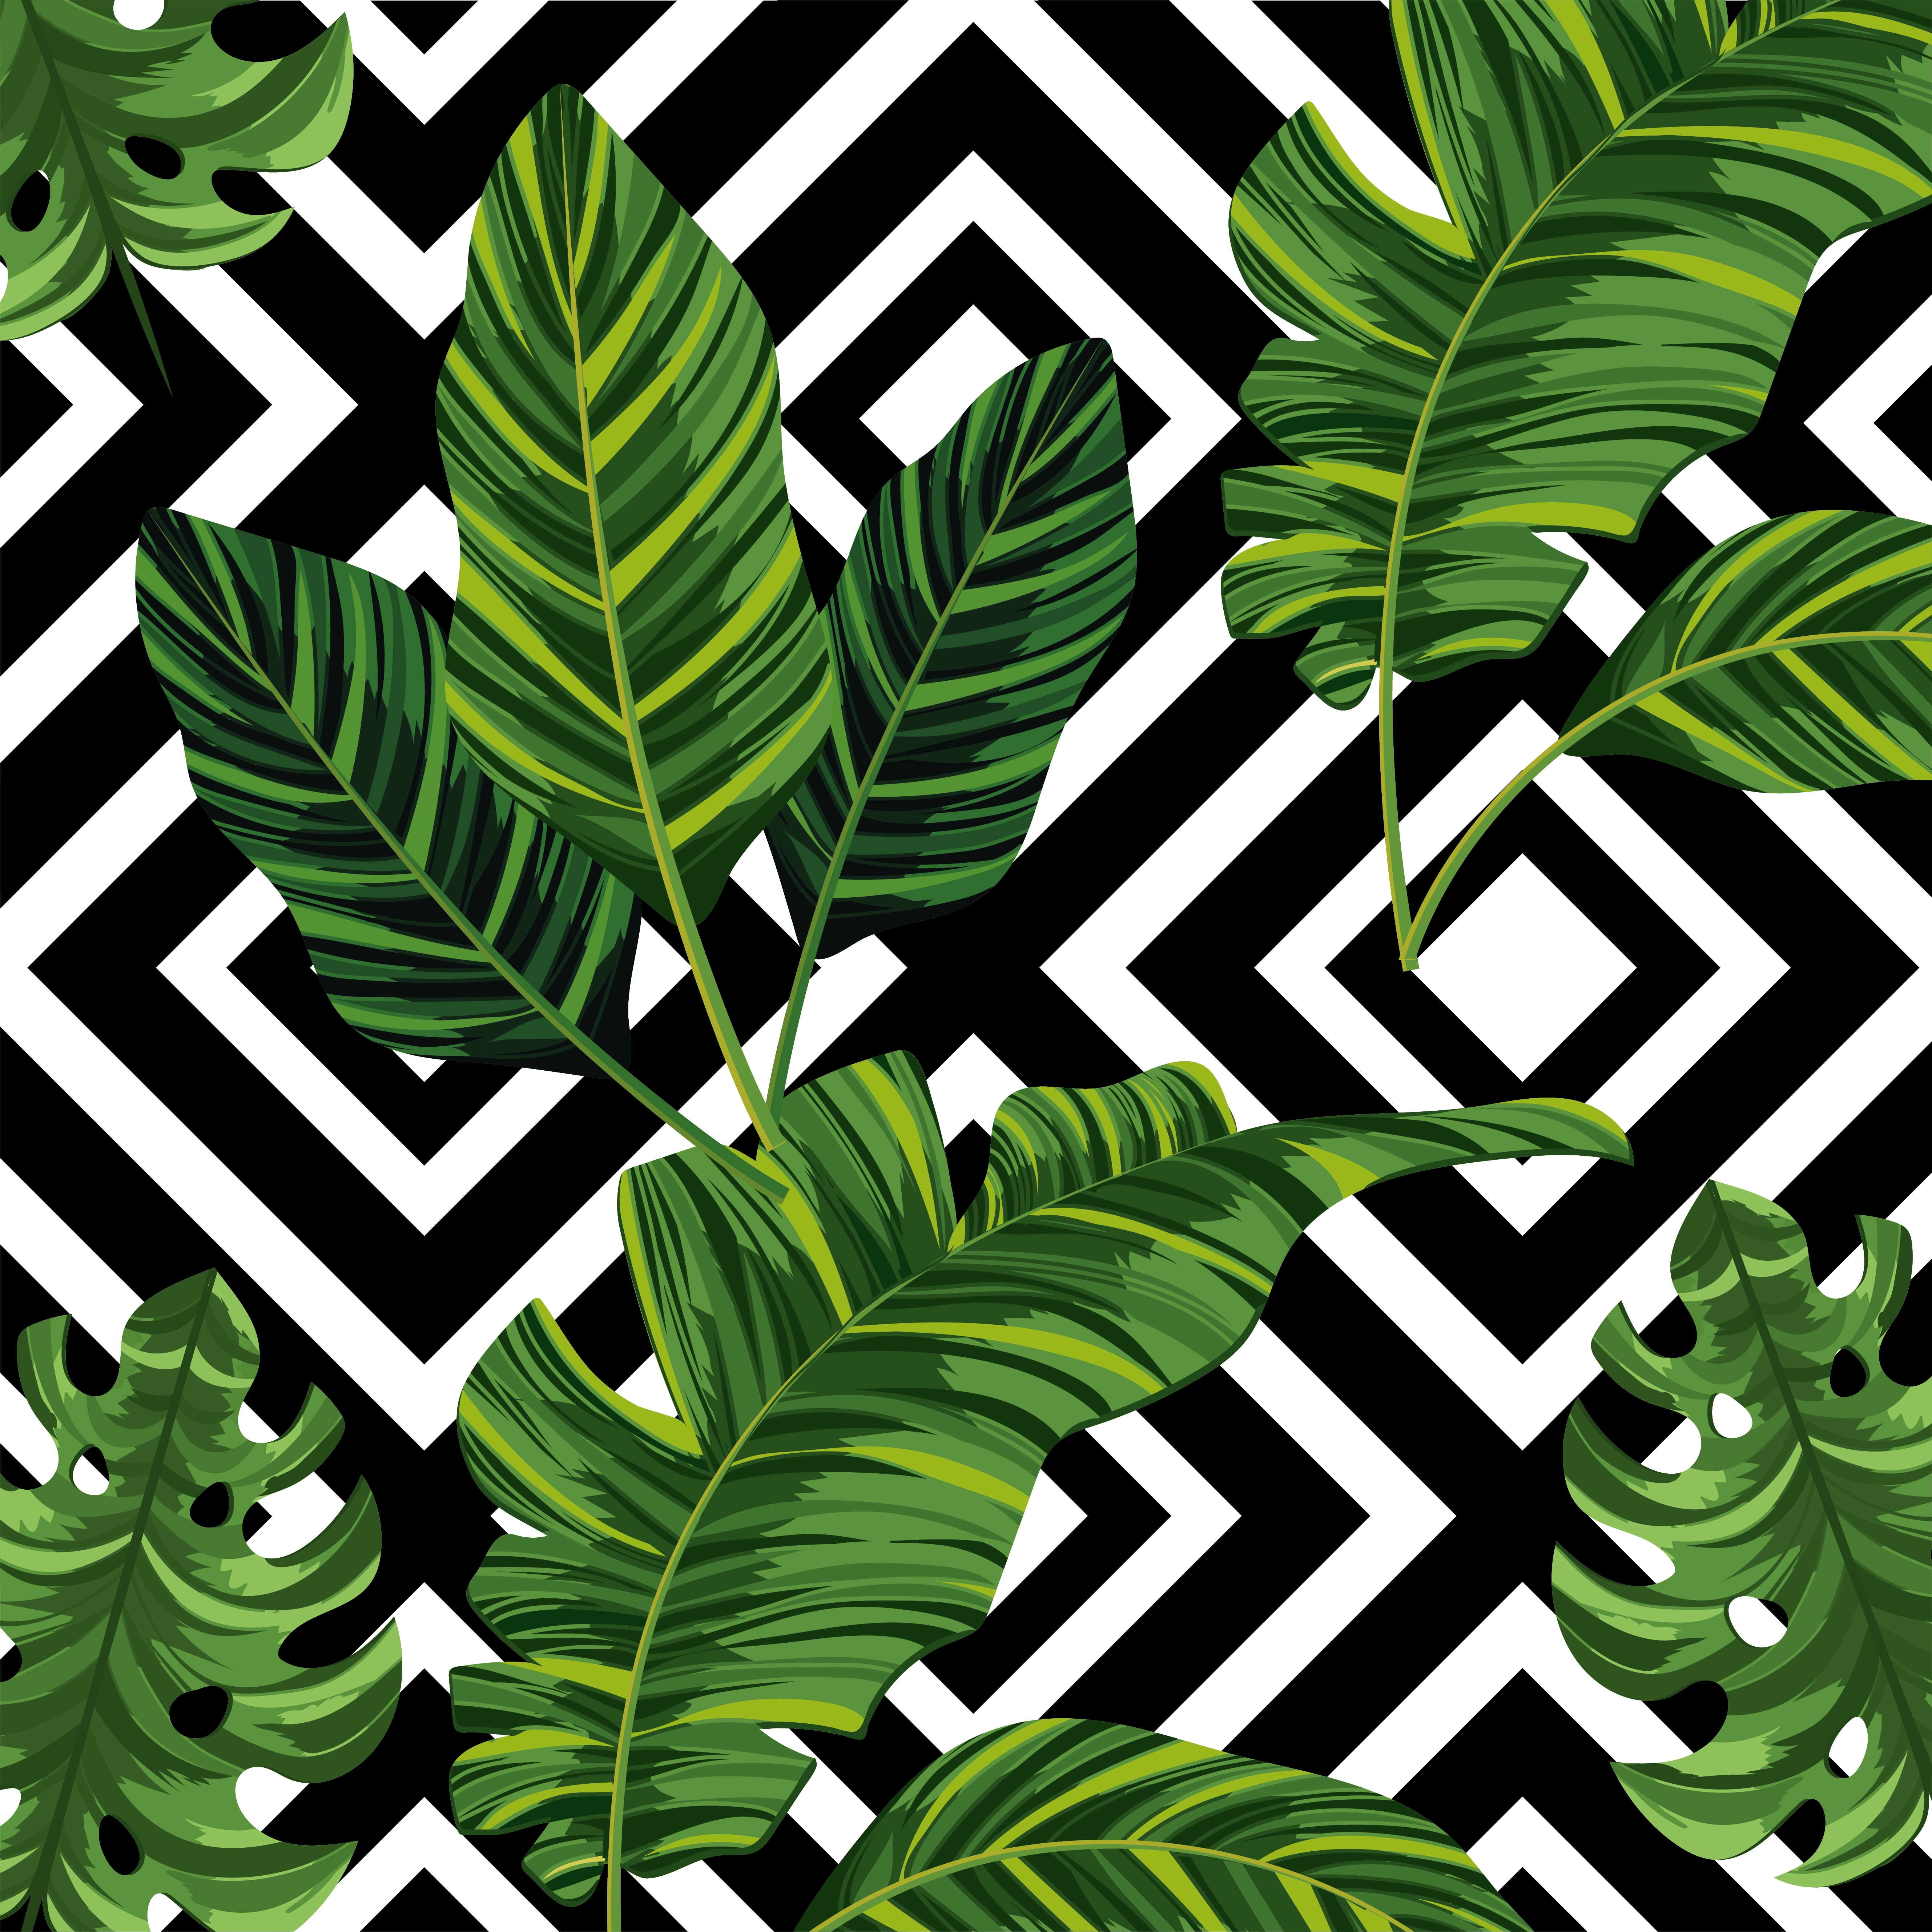 Tropical Leaves Plants And Figures Background Download Free Vectors Clipart Graphics Vector Art A 1x1 ratio file square 50cmx50cm or any combination. vecteezy